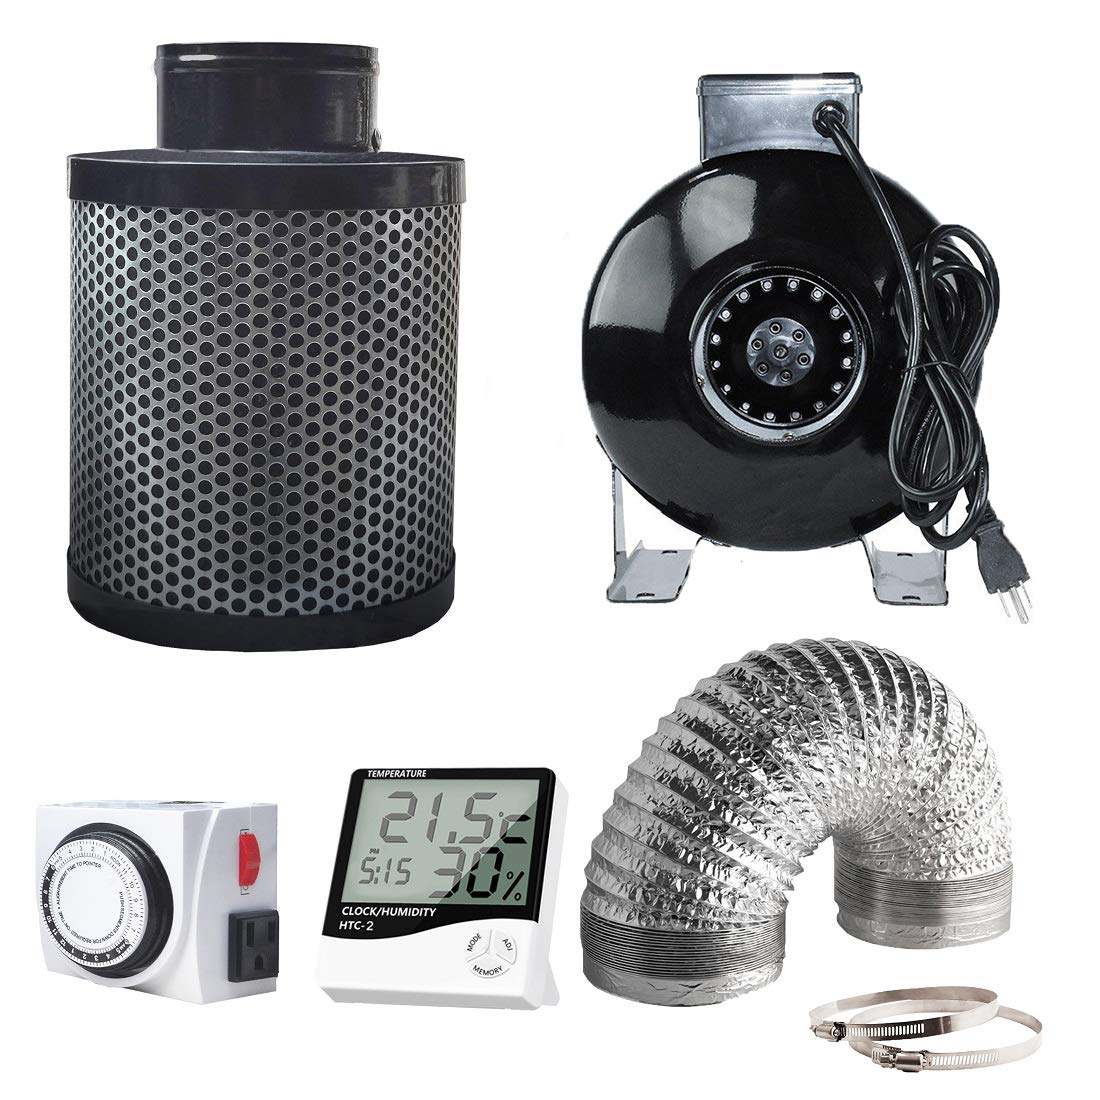 cdmall 4'' Inline Fan Carbon Filter Ducting Combo + Variable Fan Speed Controller + Hygrometer Thermometer + 24 Hour Timer Outlet for Hydroponic Grow Tent Ventilation System (4'' Ventilation Kit)